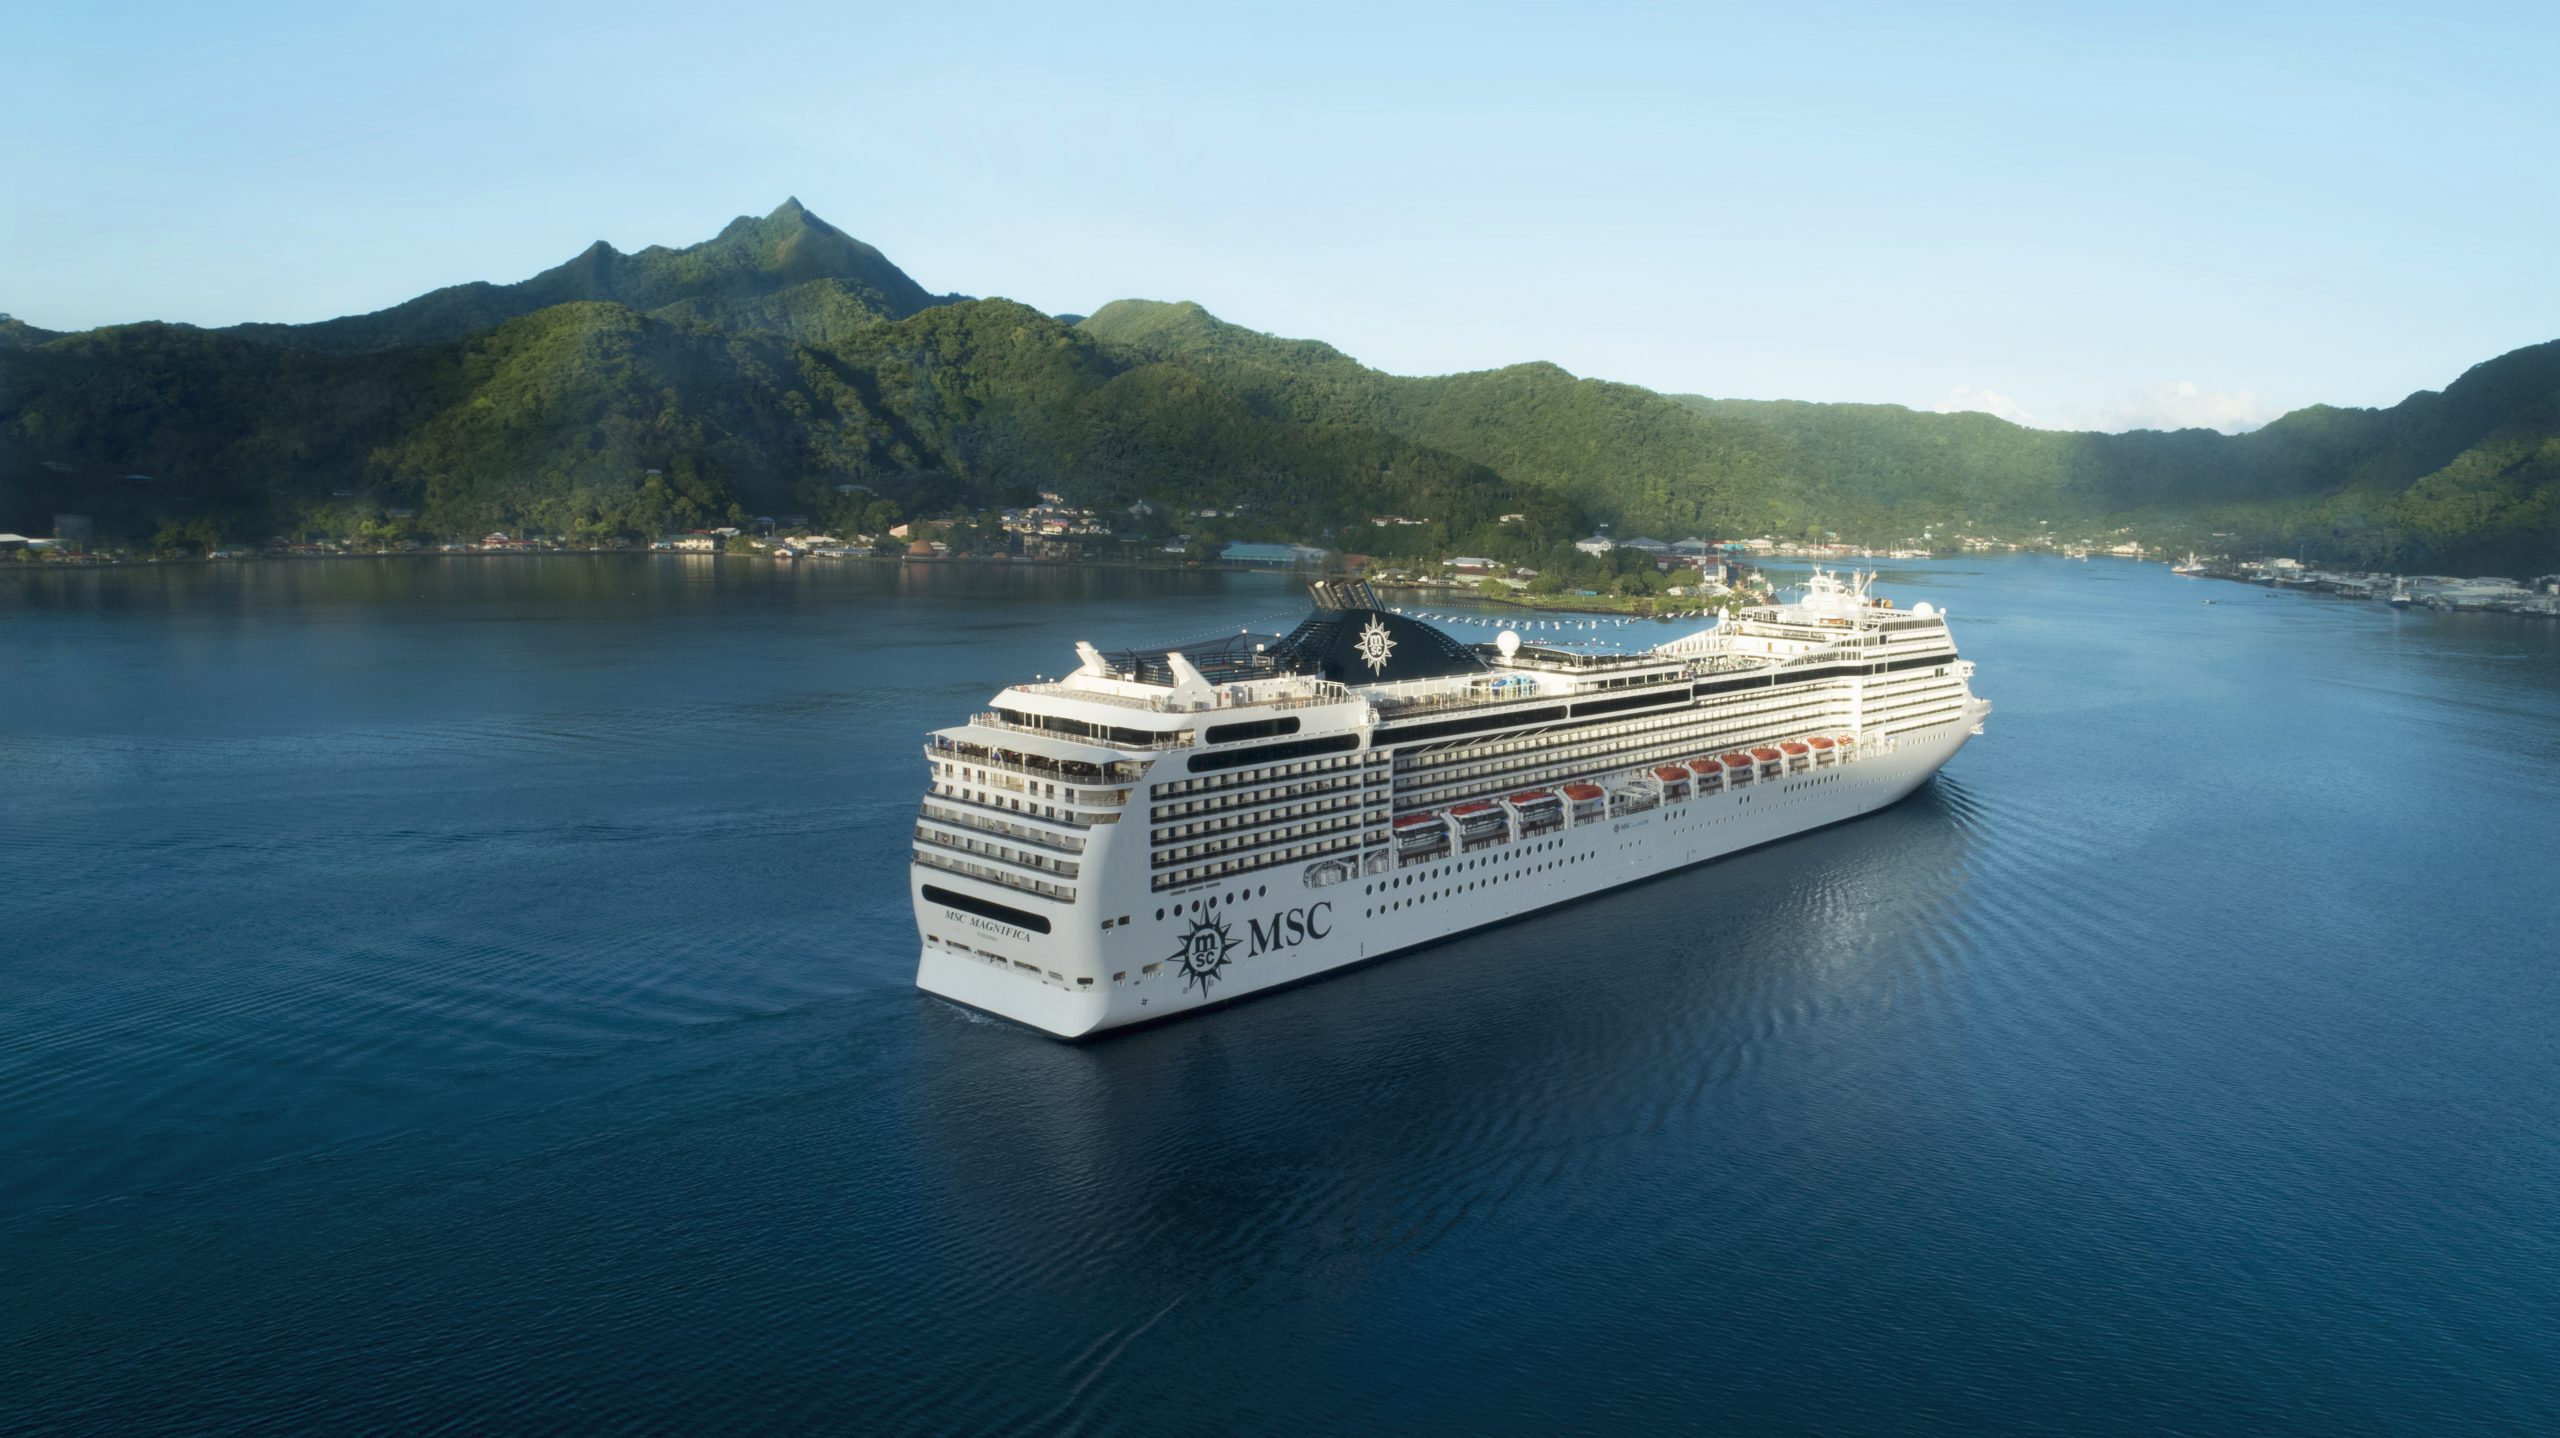 MSC Magnifica cruises cancelled